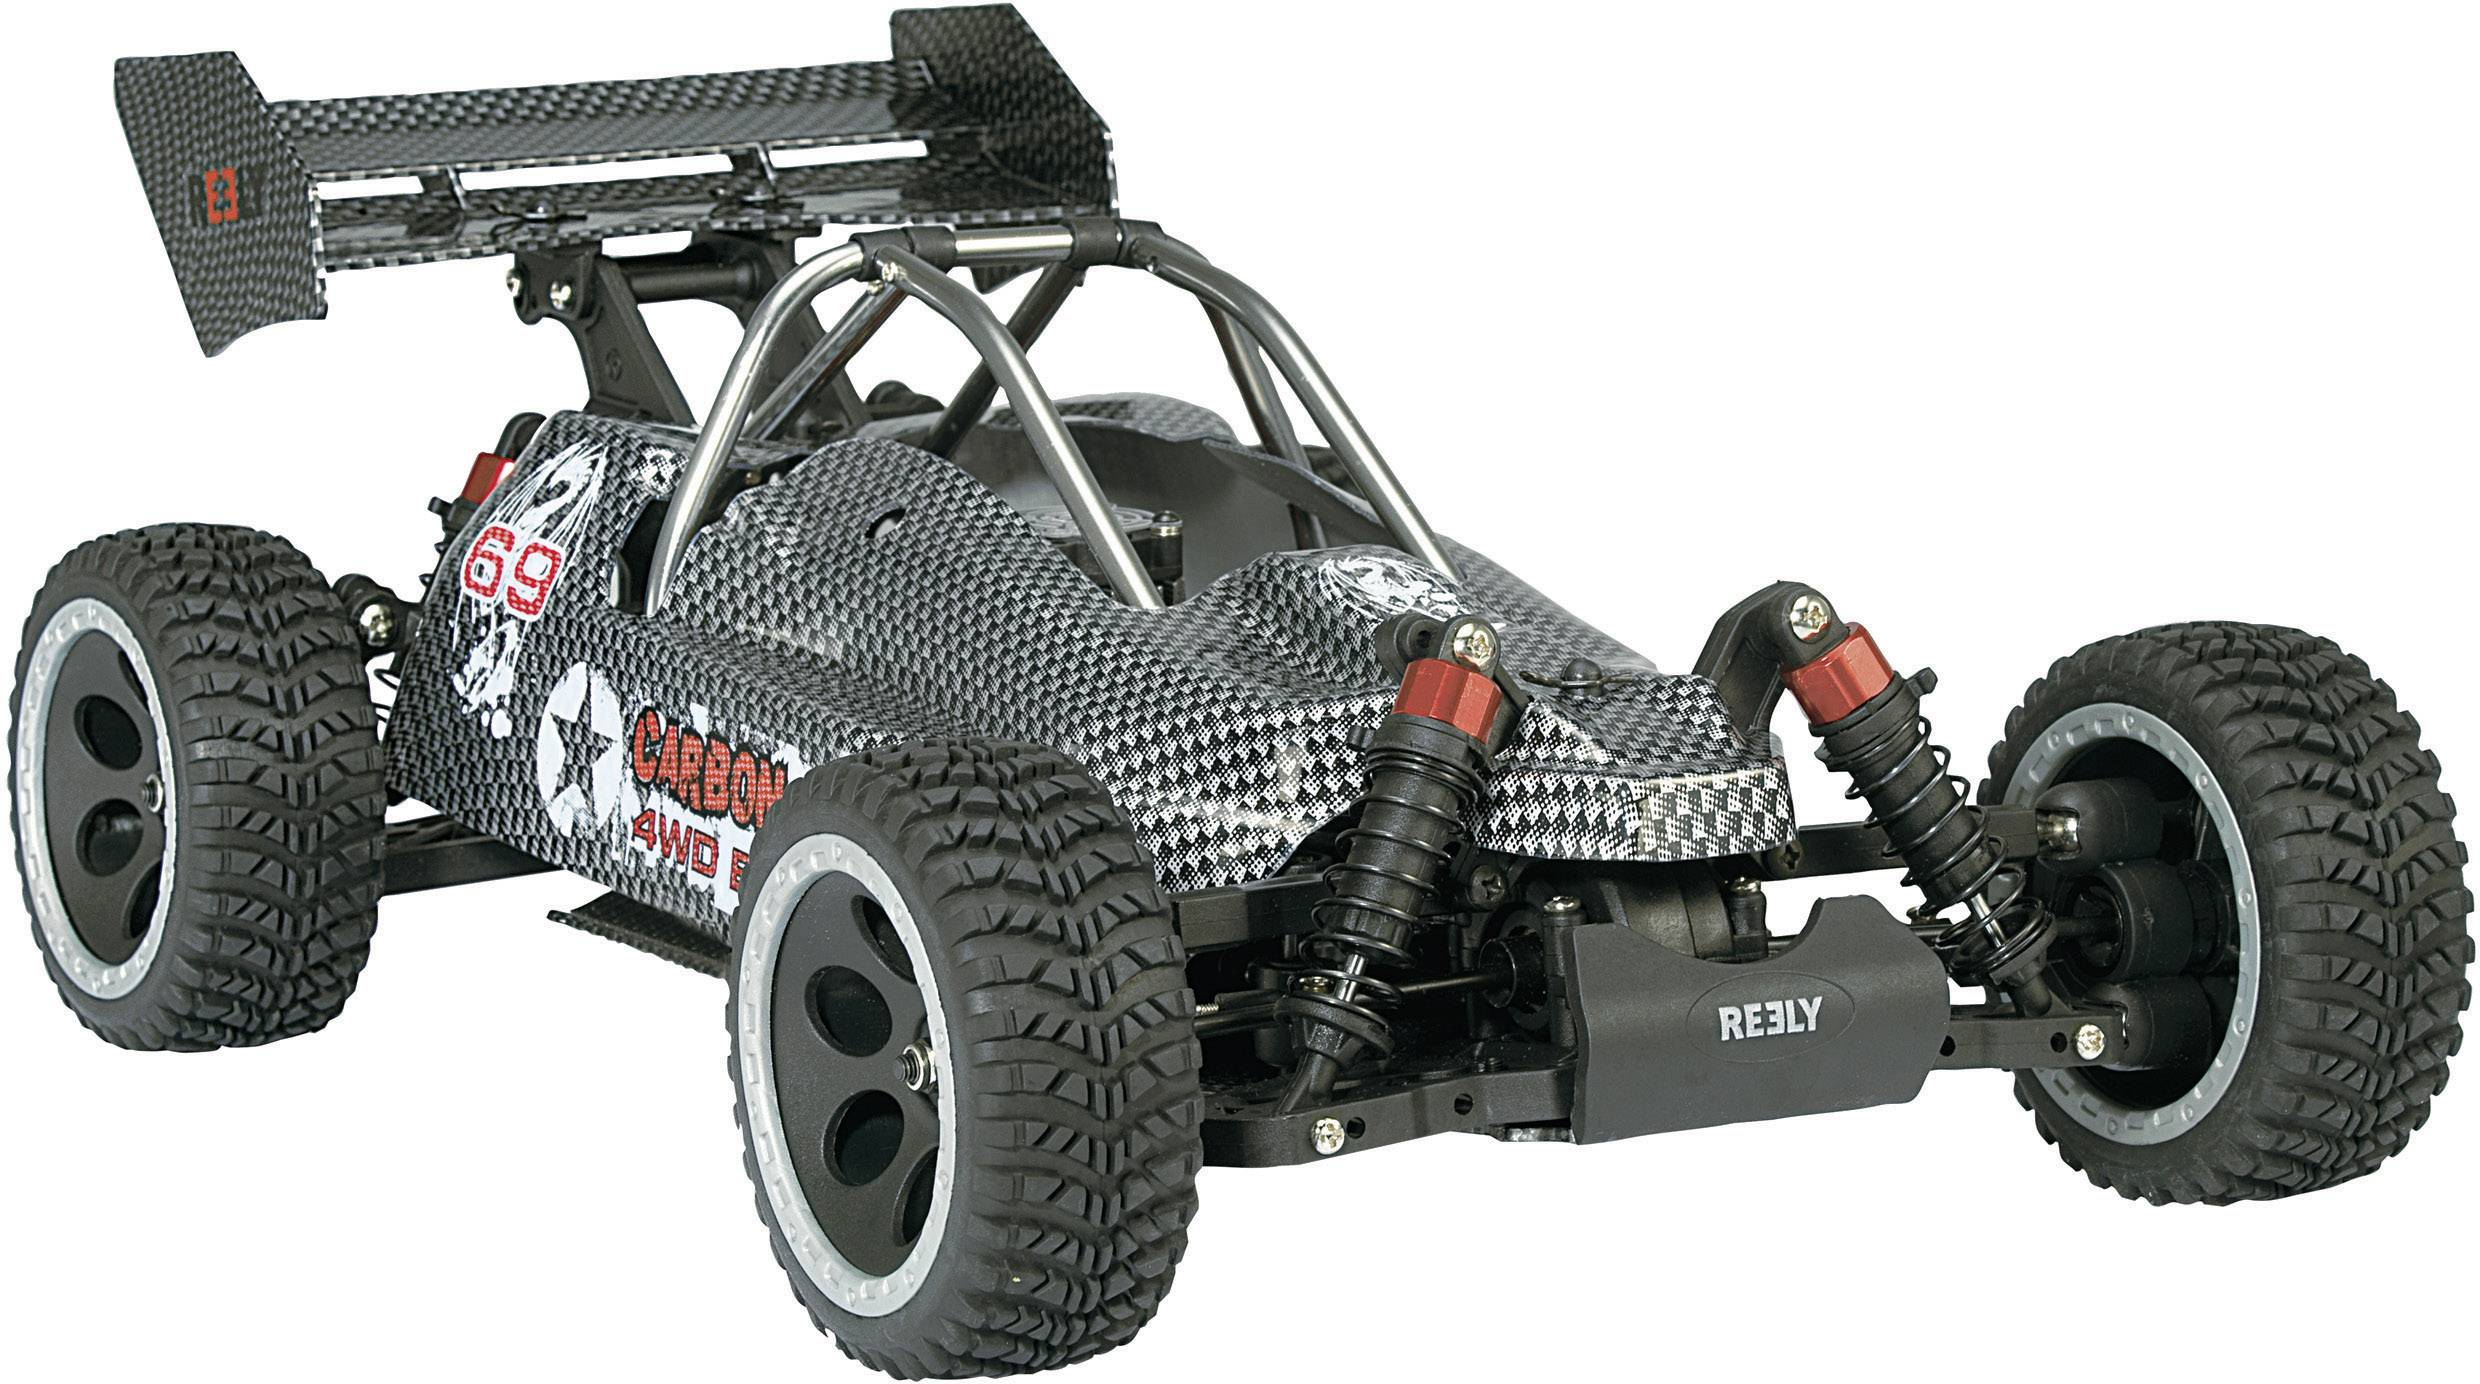 uggy Reely Carbon Fighter Brushless 4WD